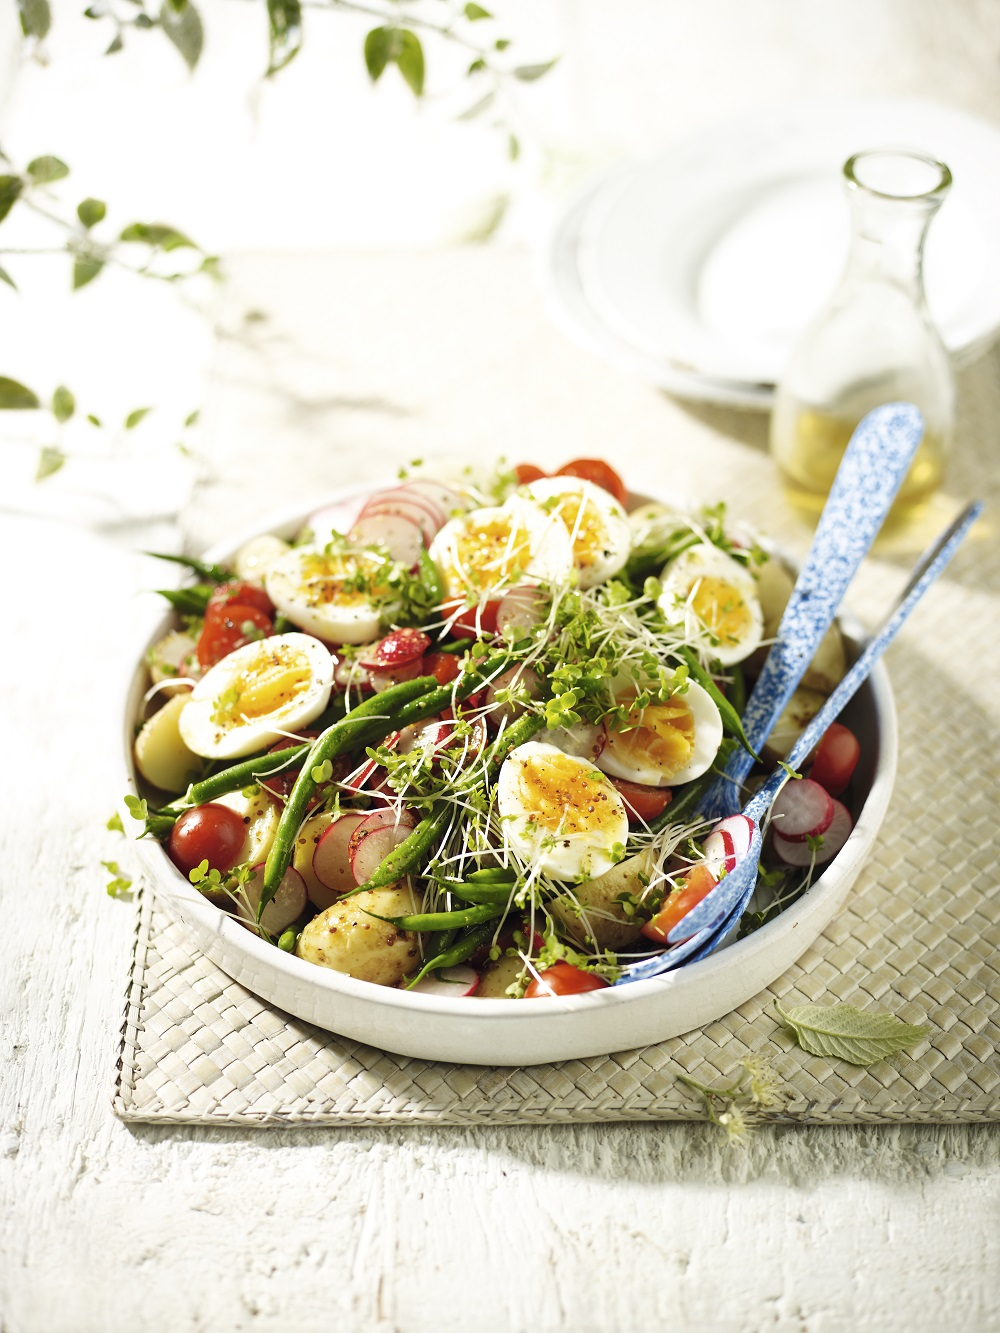 British Summer Salad With Honey-Mustard Dressing